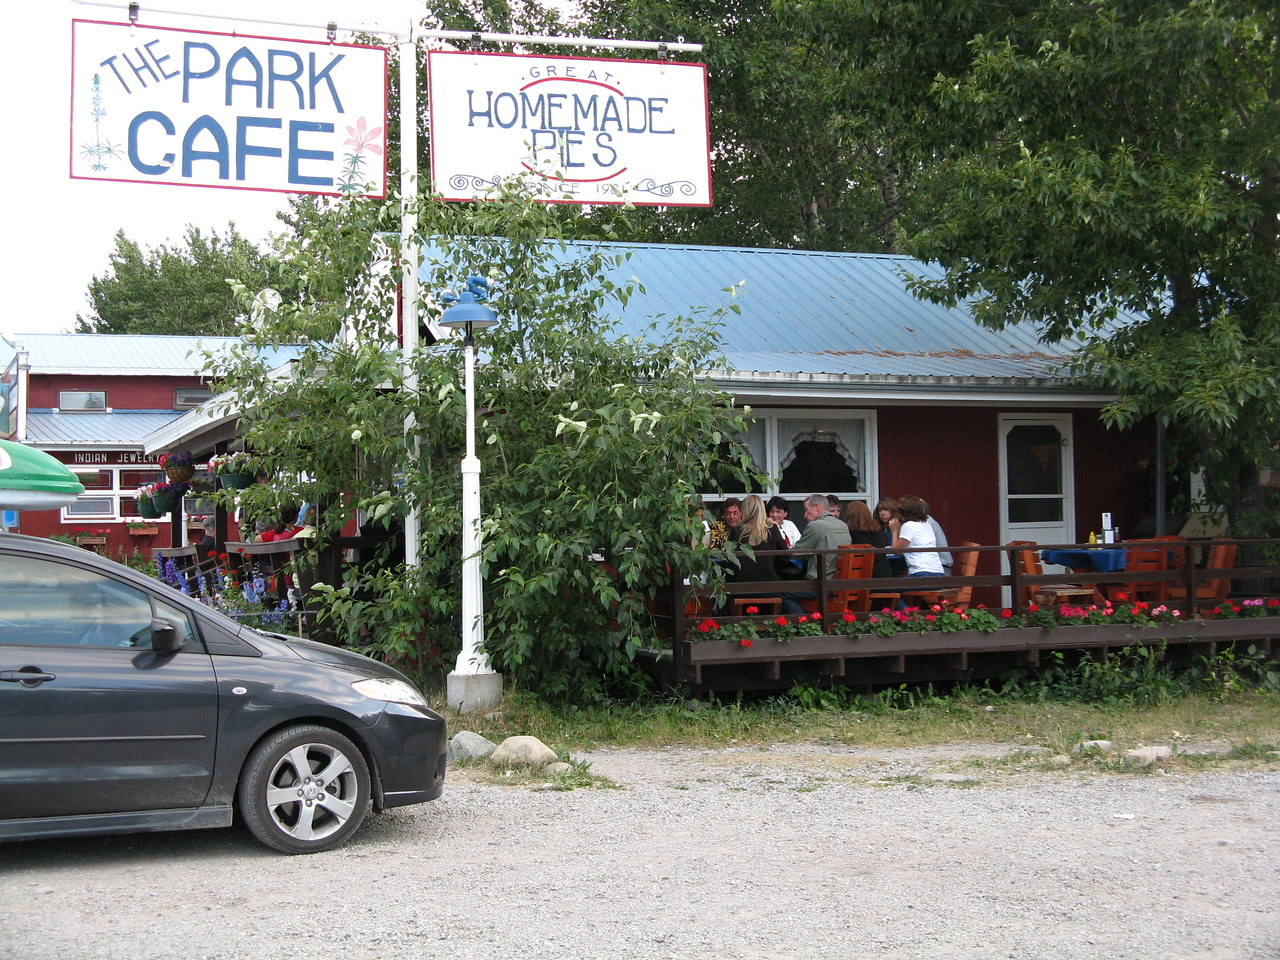 We looked online for places to eat in Saint Mary, Montana.  There were only 3.  And this one, The Park Cafe, got rave reviews.  We ended up eating dinner here 3 nights in a row.  Strawberry, blueberry-cranberry, and razzleberry (mixed berry) pies were delicious. Hey, after a long hike, we could afford to splurge on a few extra calories. Because we hung out here every evening, I took a picture.